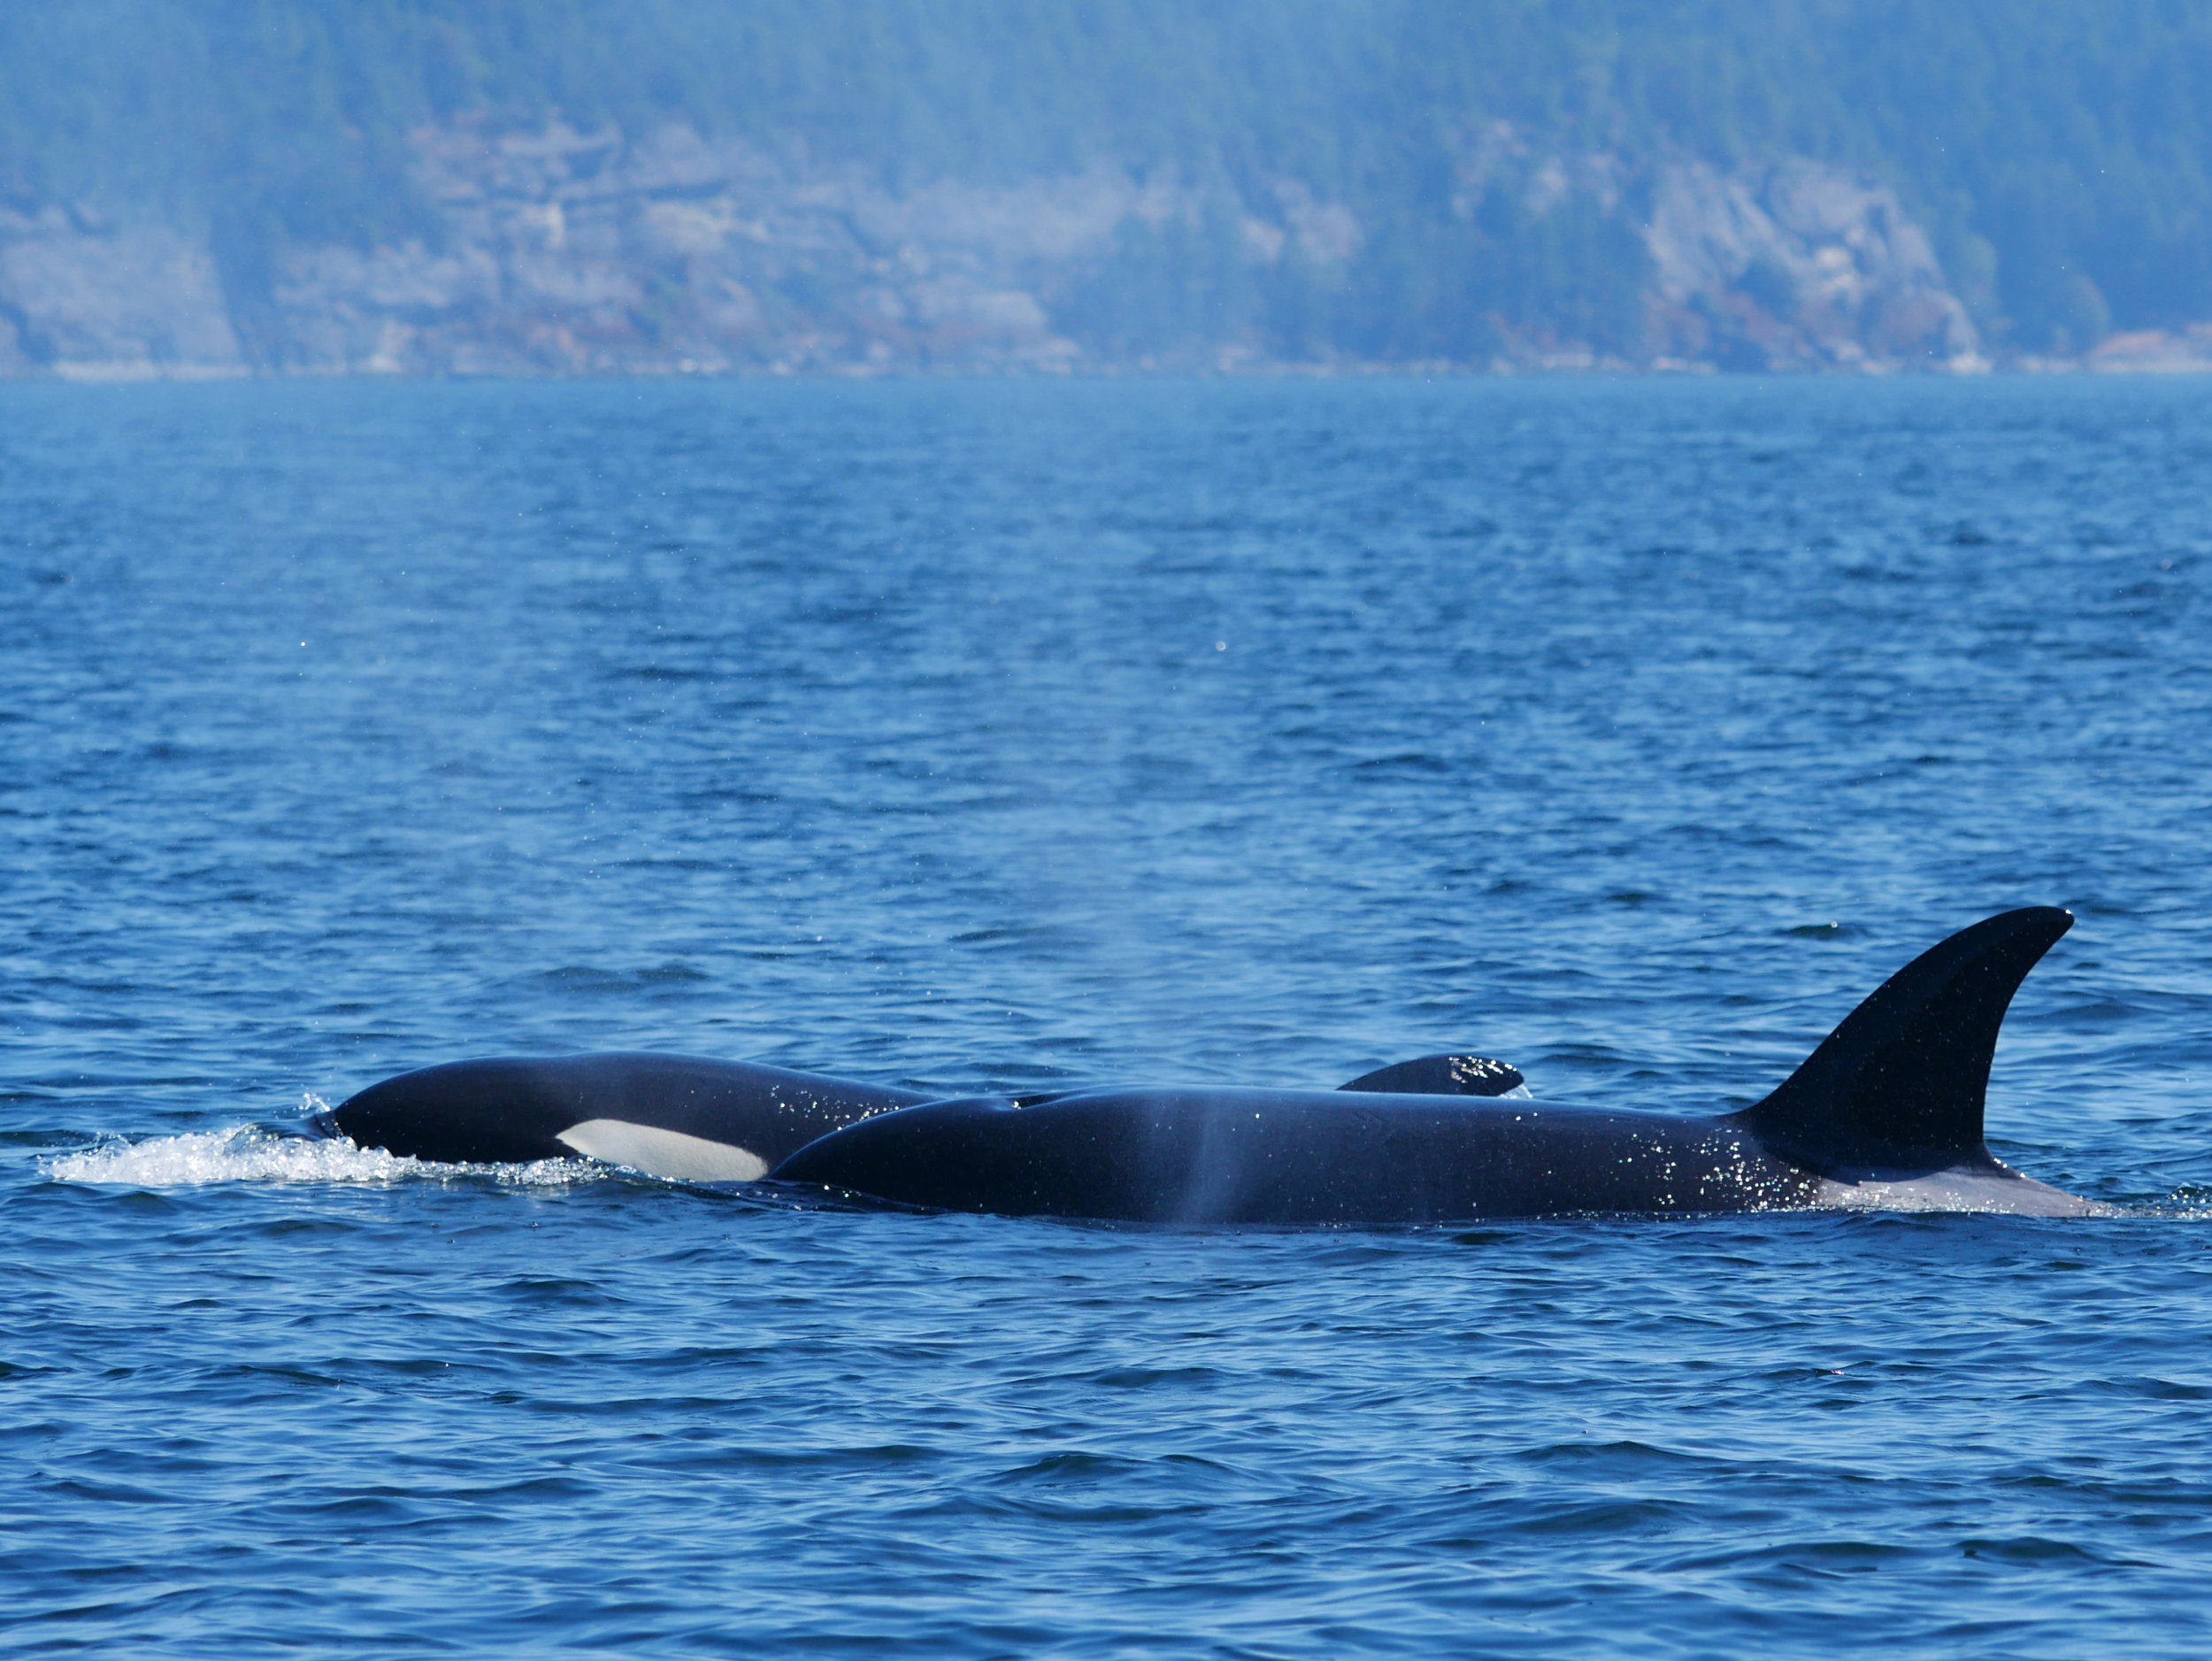 Holly and her mom surfacing together. Photo by Val Watson.